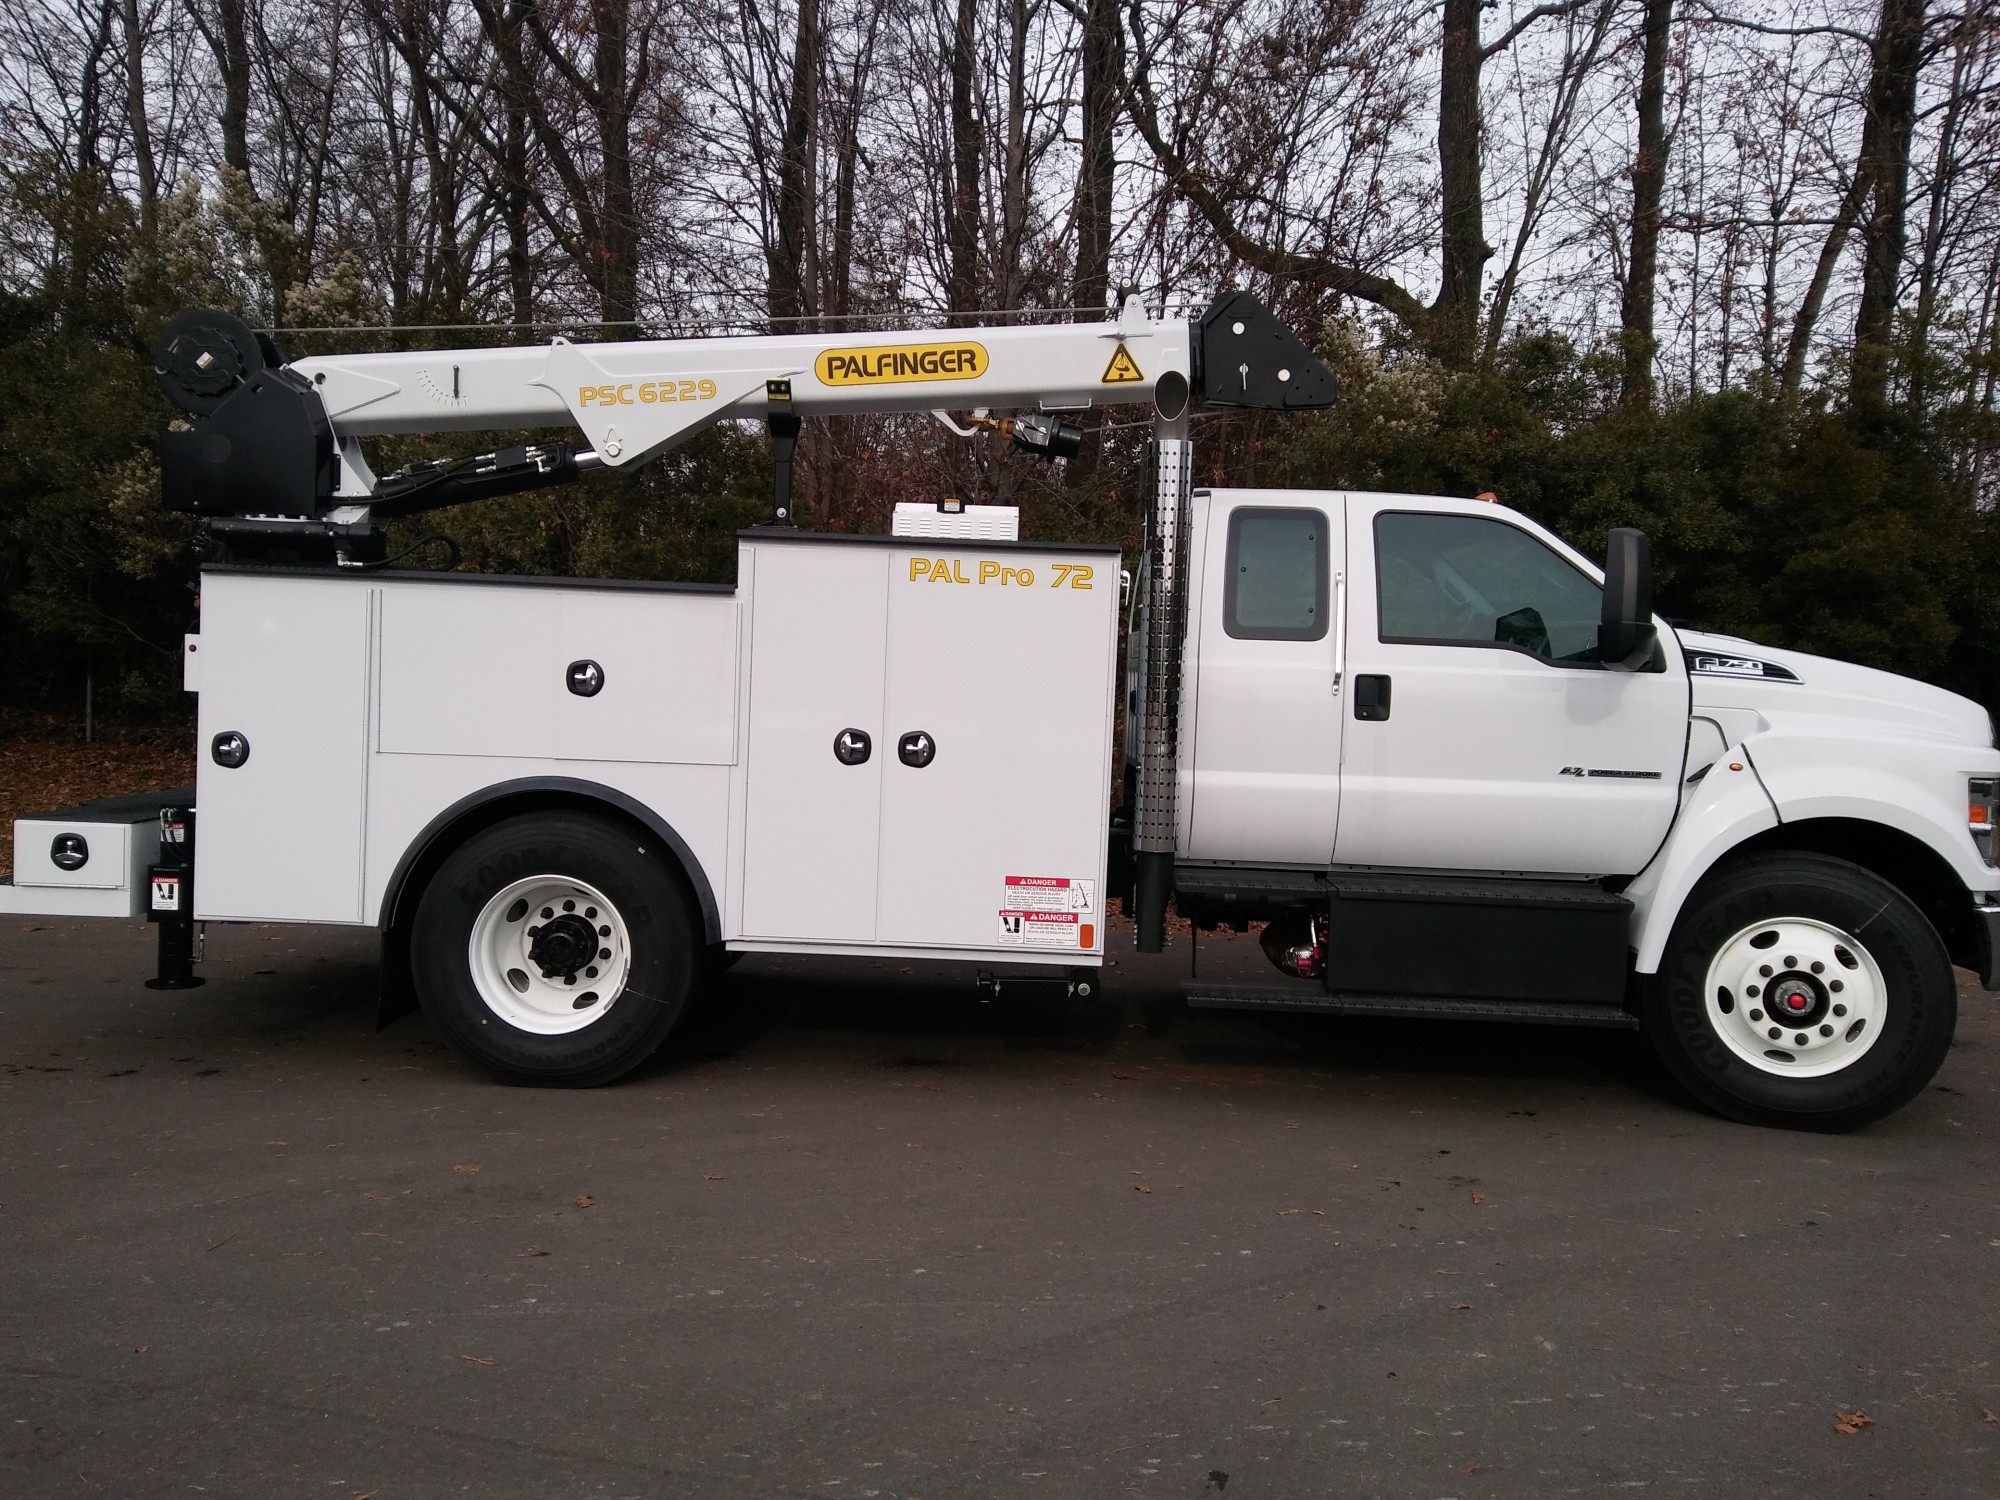 2018 Ford F750 PAL Pro 72 Mechanics Truck -JDF04789